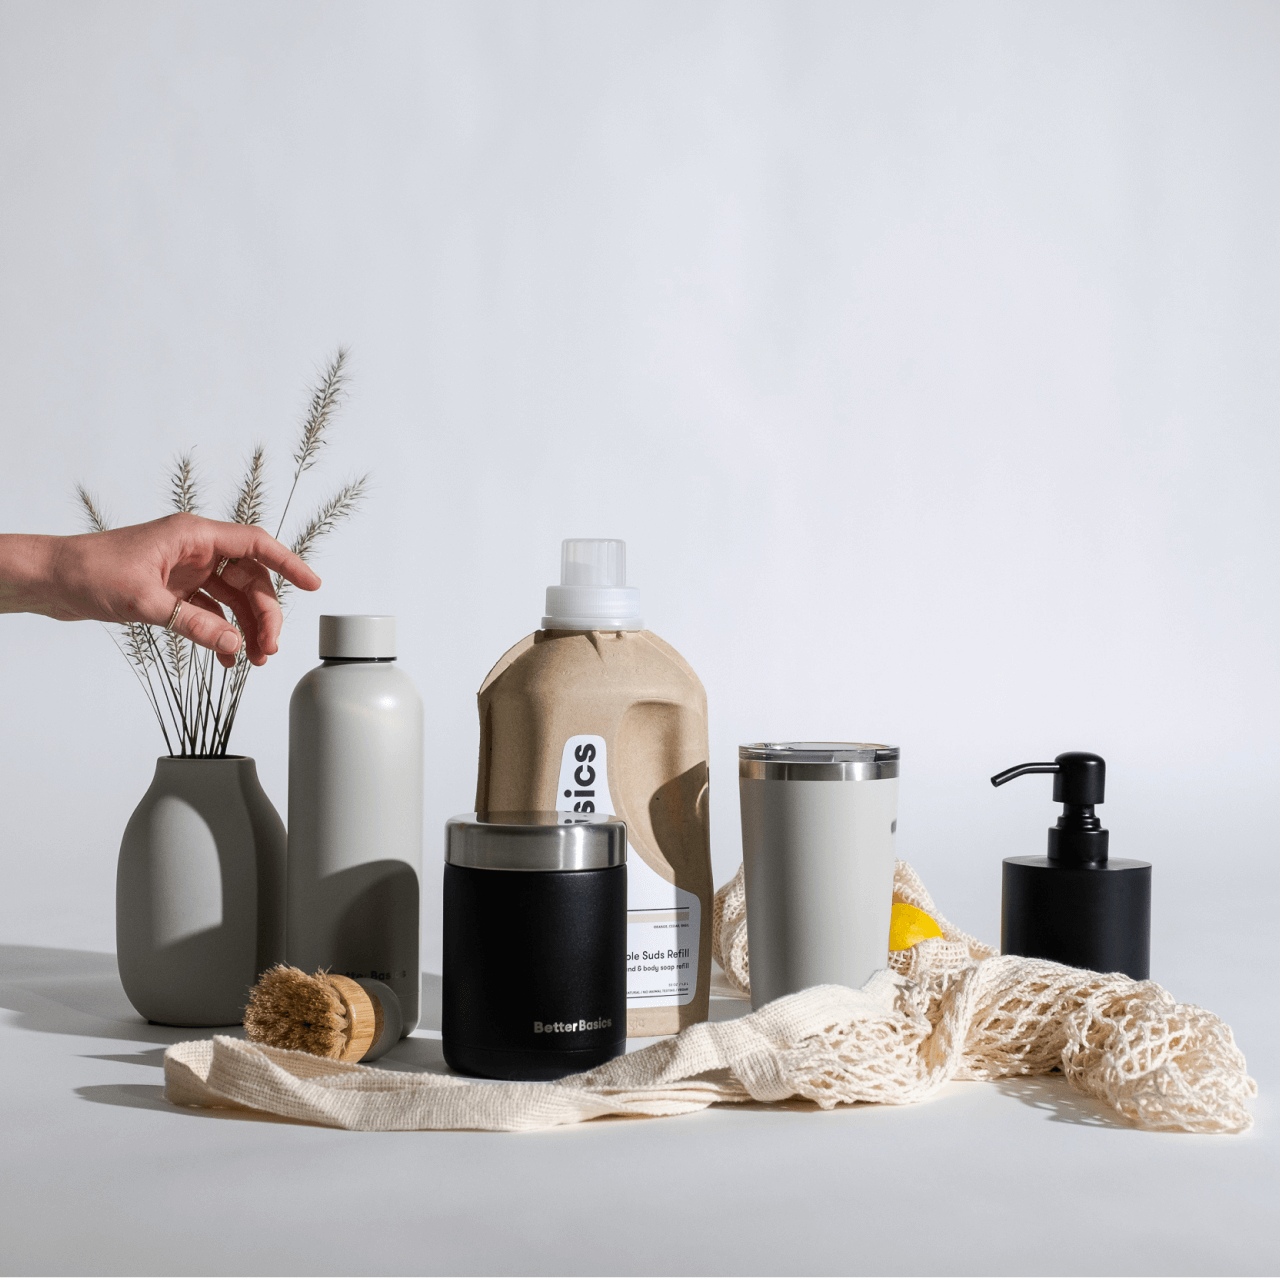 Trying to Reduce Waste in Style? Better Basics Has You Covered